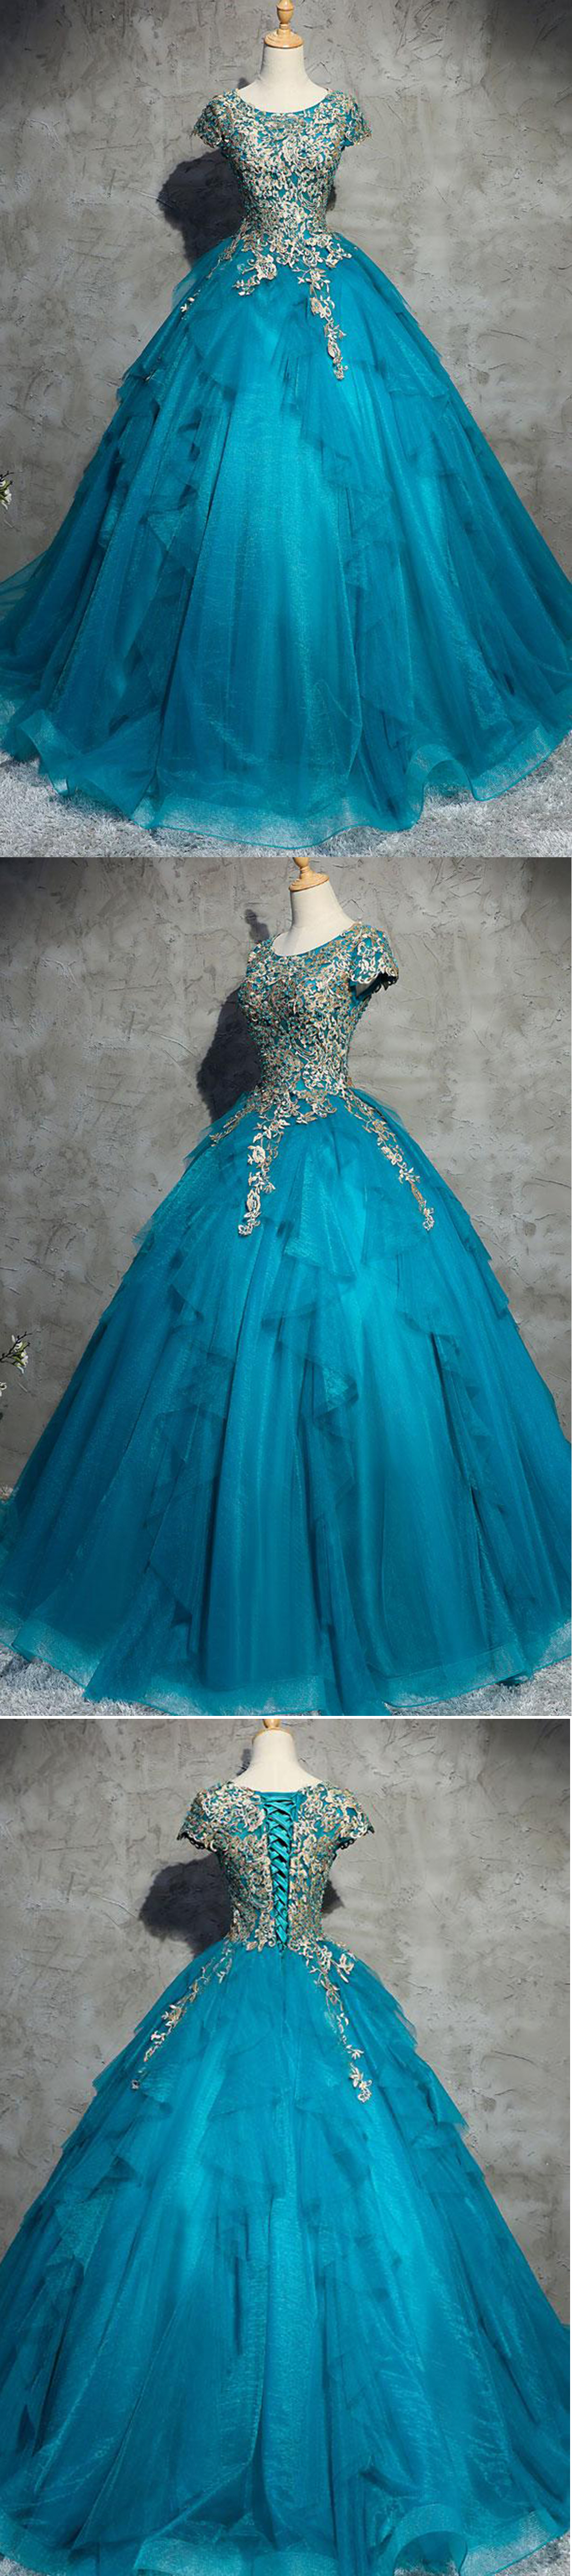 537cf00a260 Unique blue tulle lace top round neck winter formal prom dresses ...